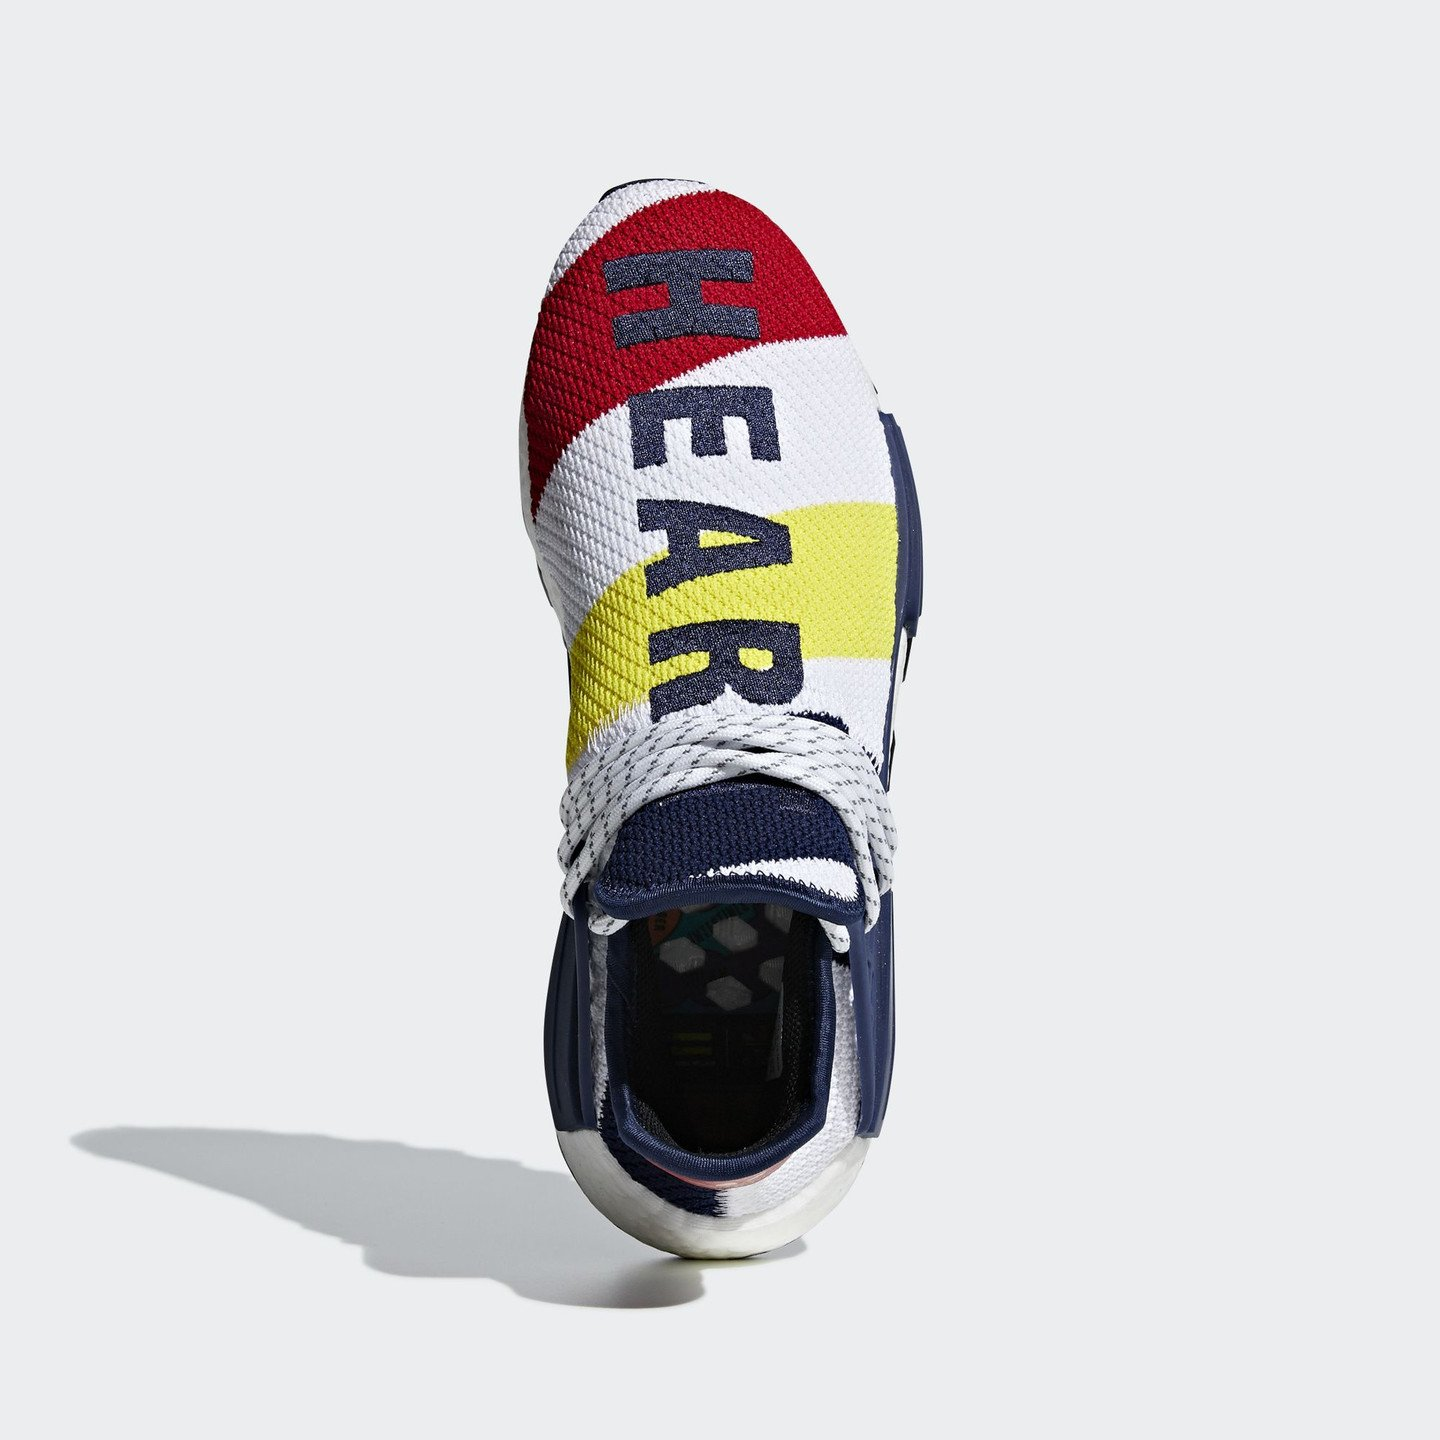 Adidas Pharrell Williams x BBC HU NMD Ftwr White / Scarlet / Dark Blue BB9544